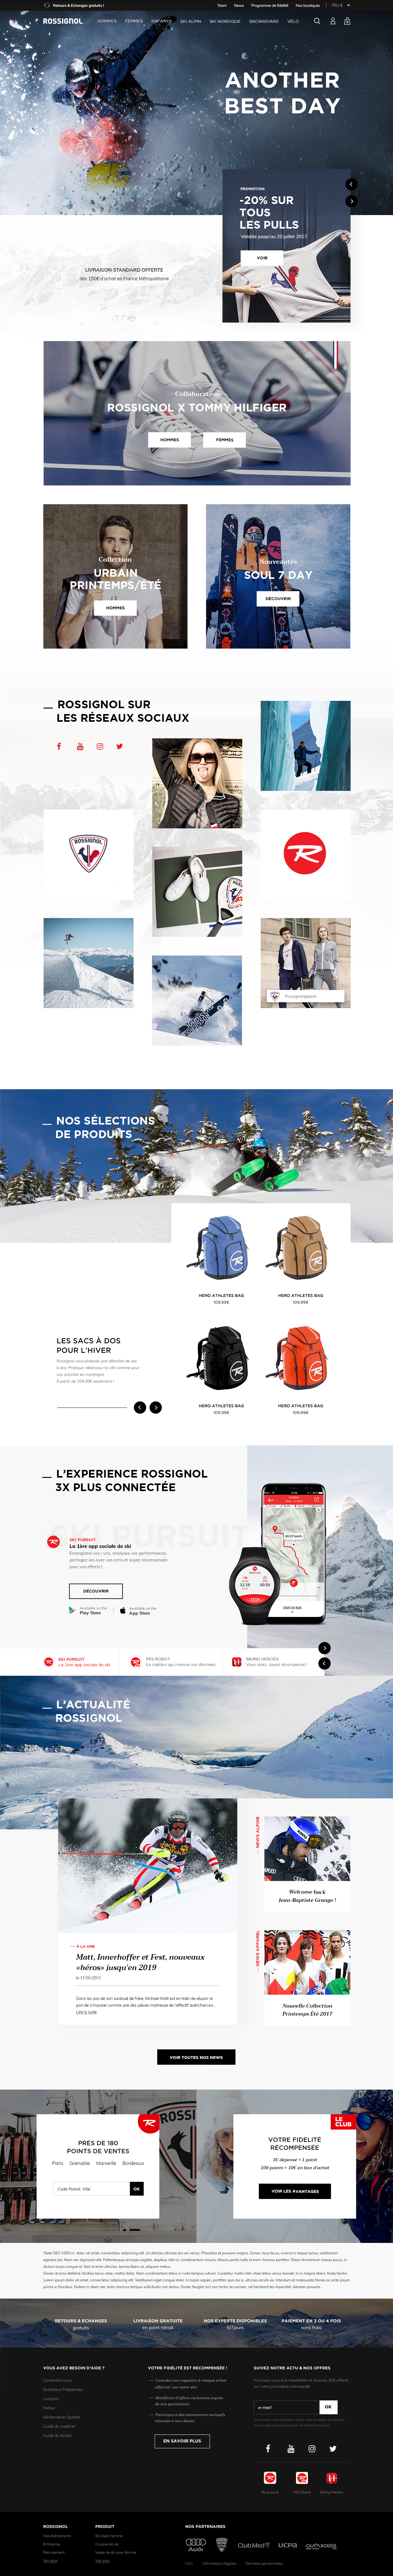 01-1_D_HomePage_stage_Sport